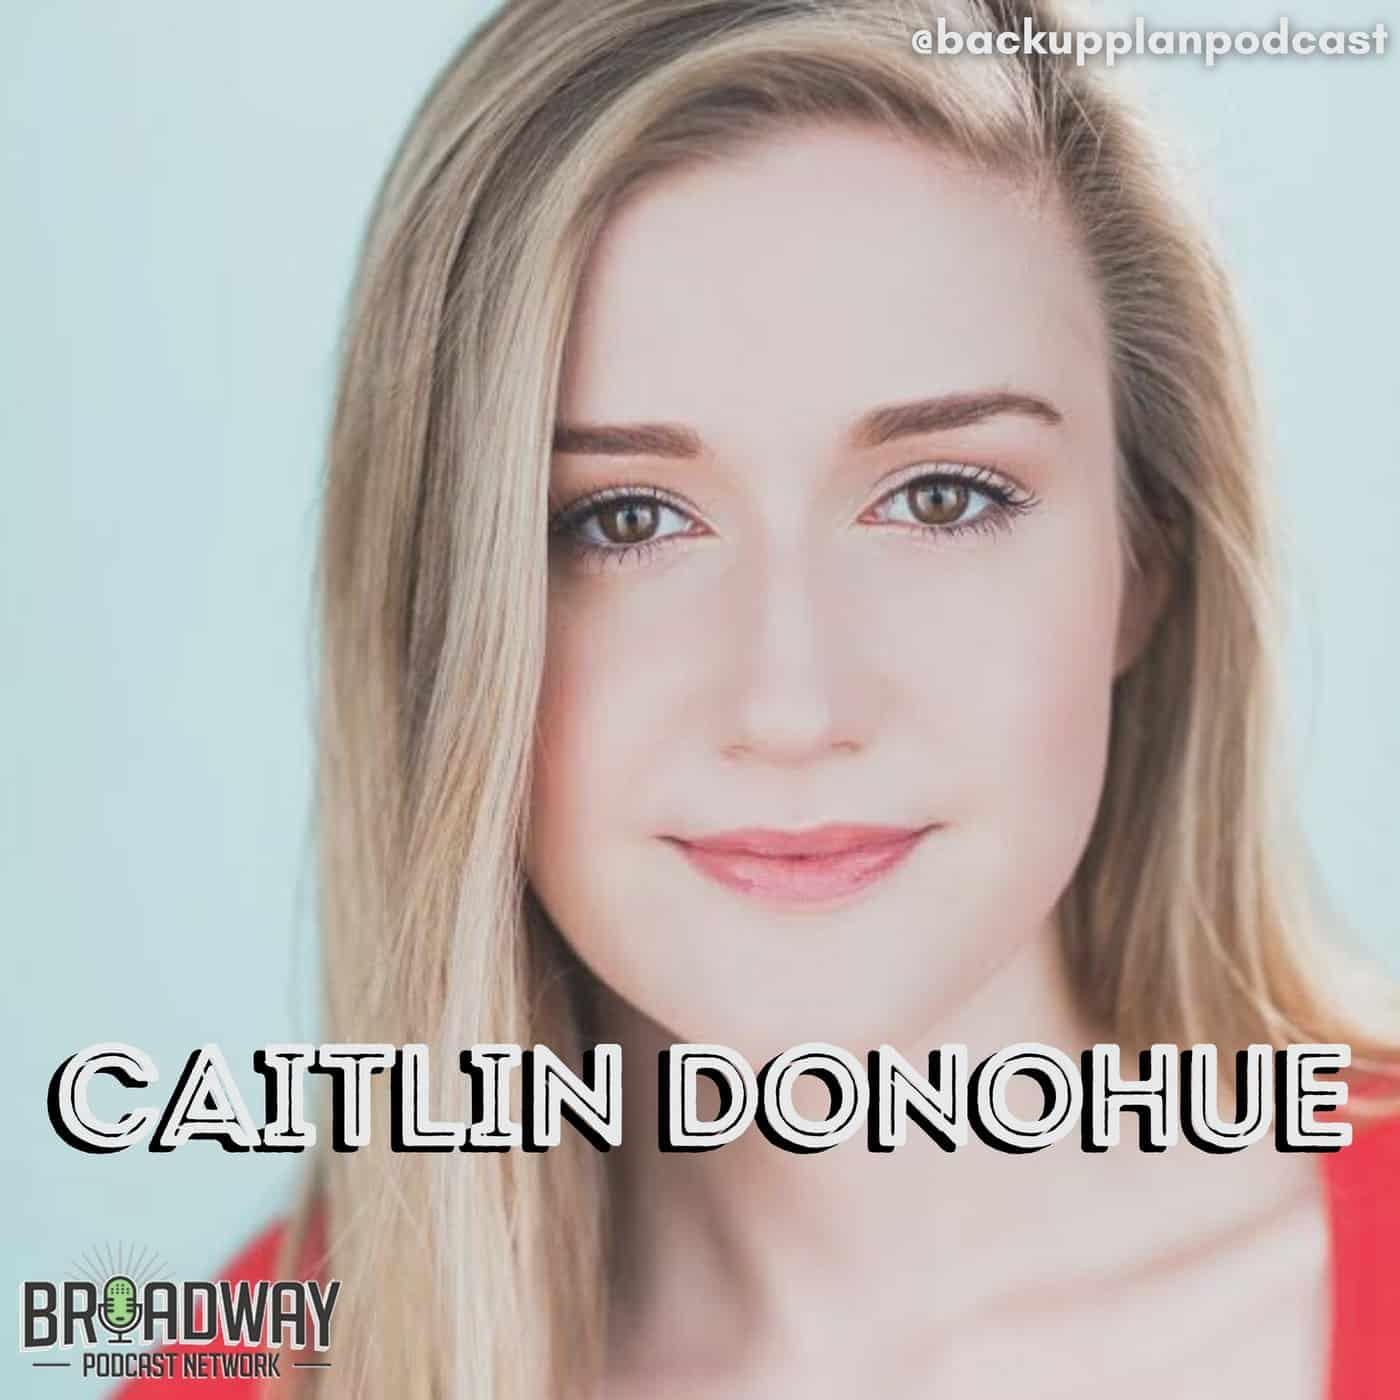 Episode 204 - Finding financial freedom with Multify's Caitlin Donohue